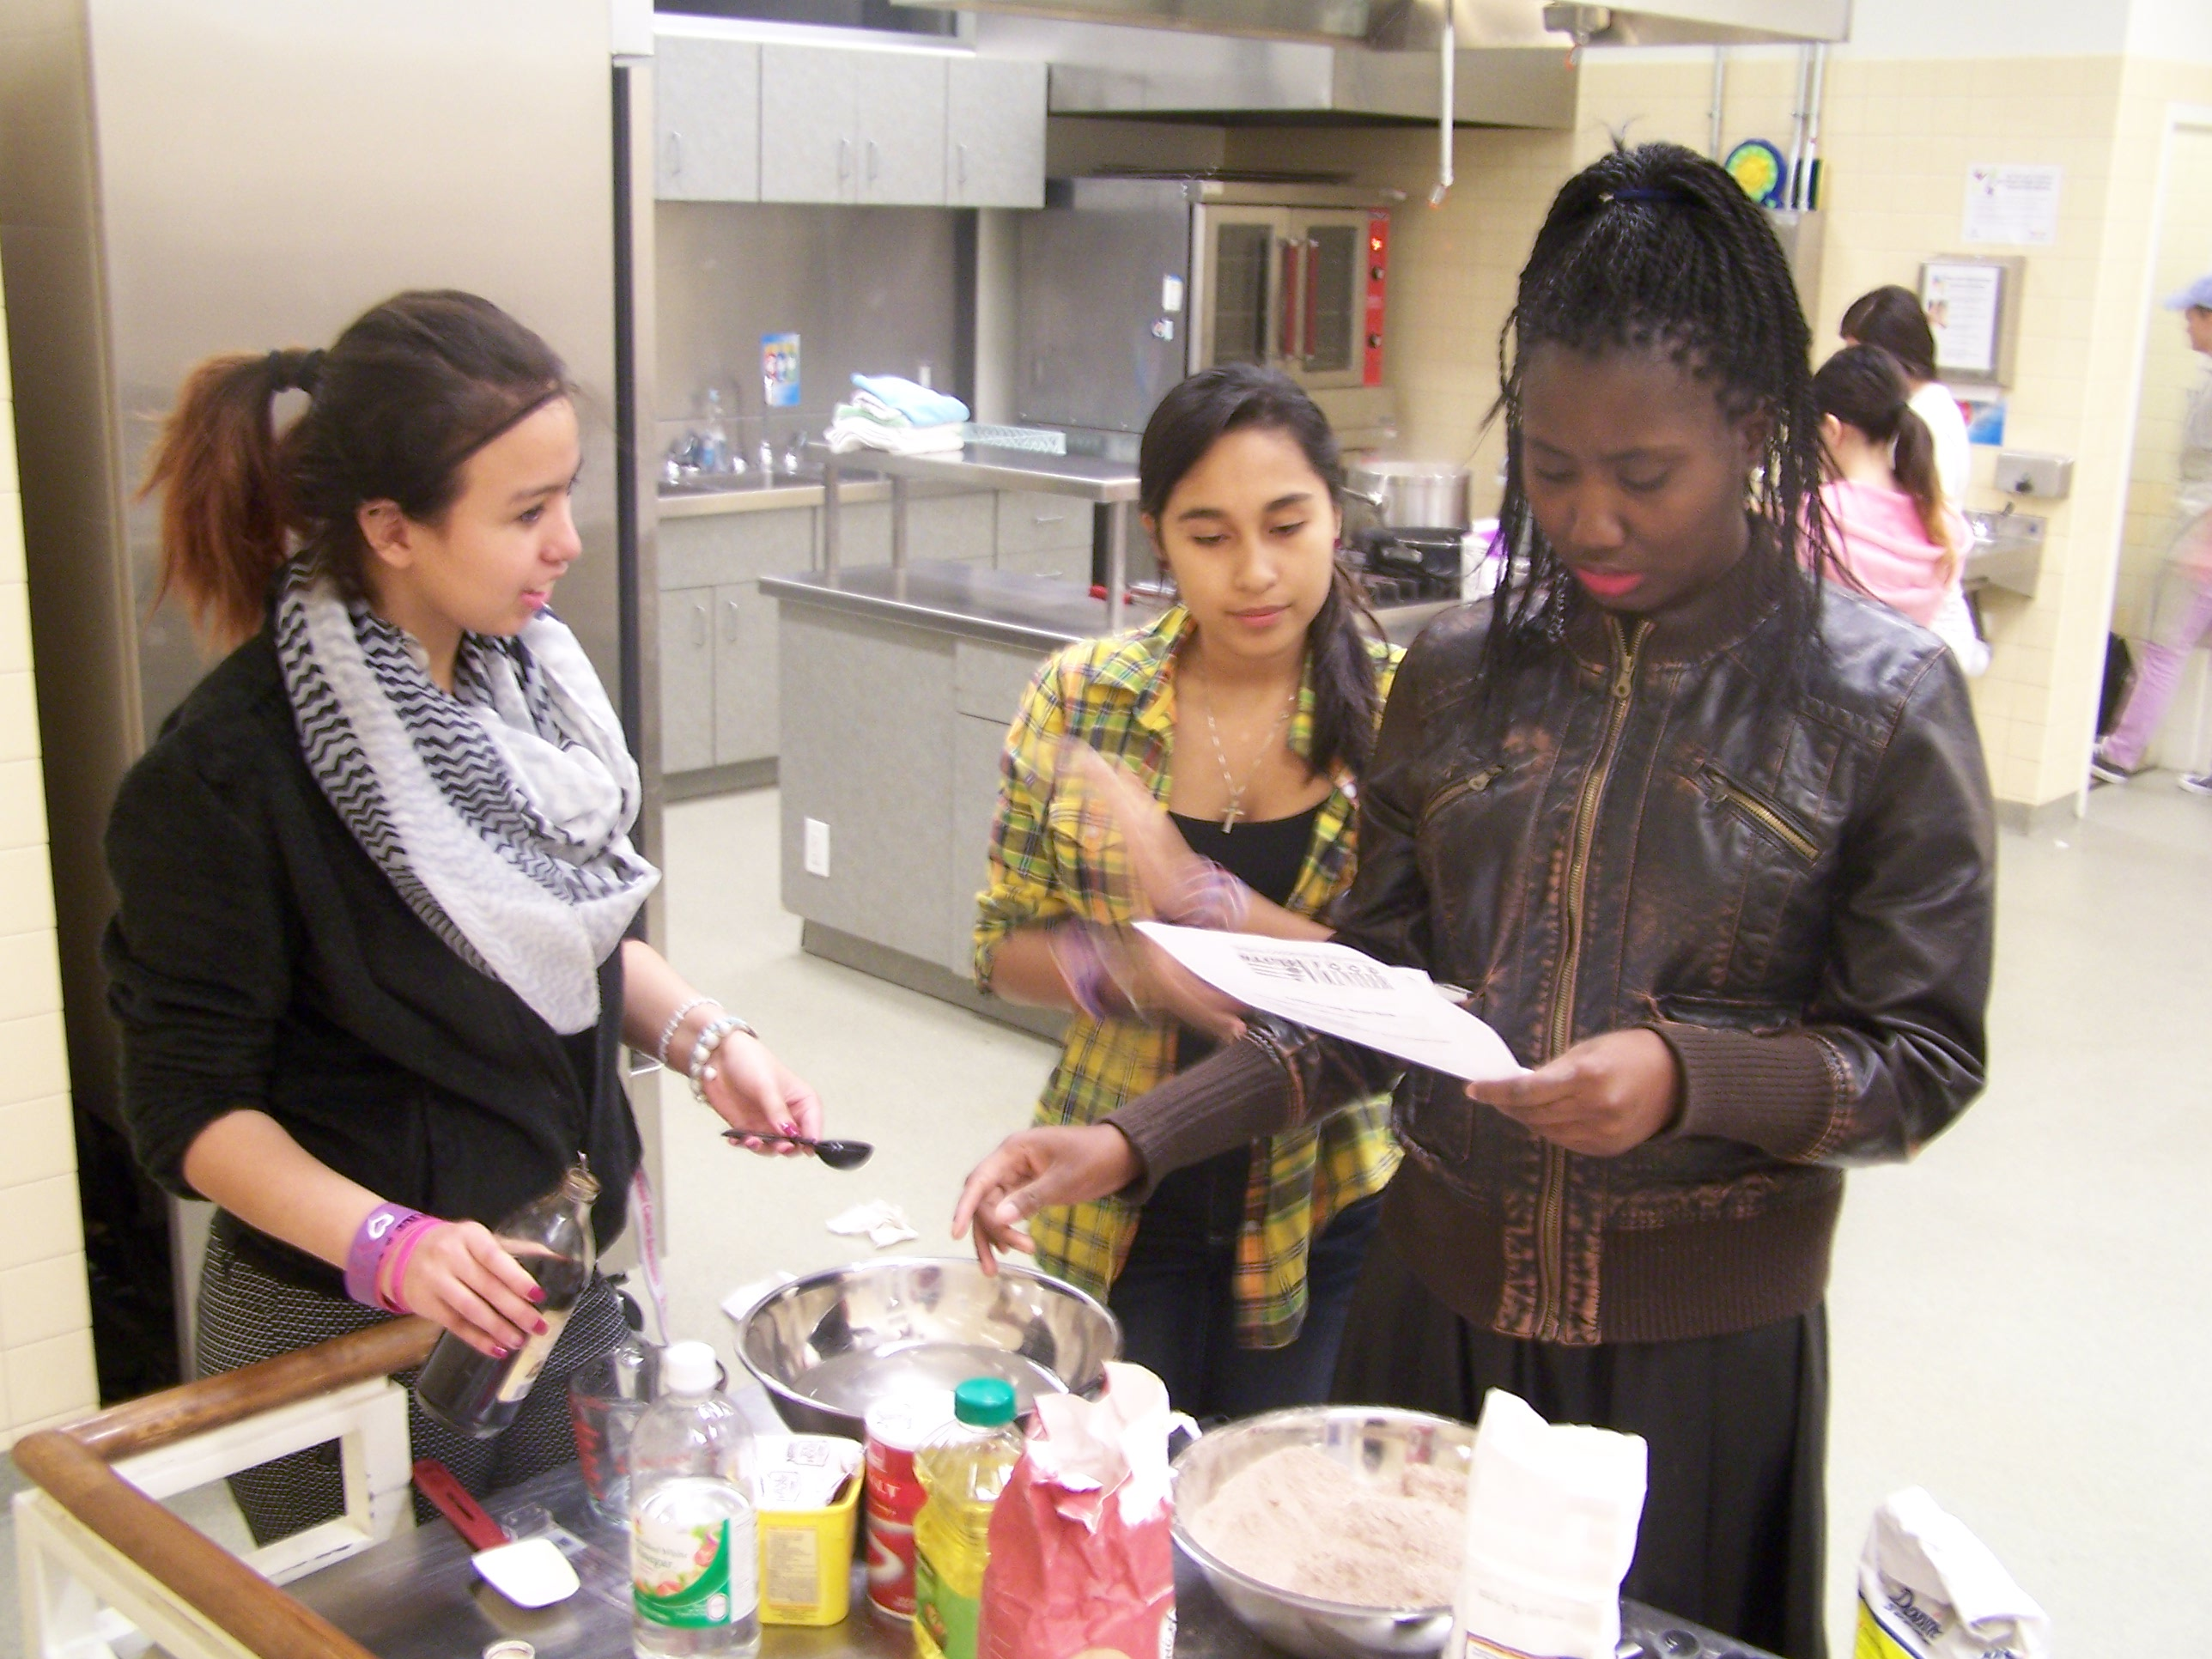 Teens check a recipe while making chocolate cake